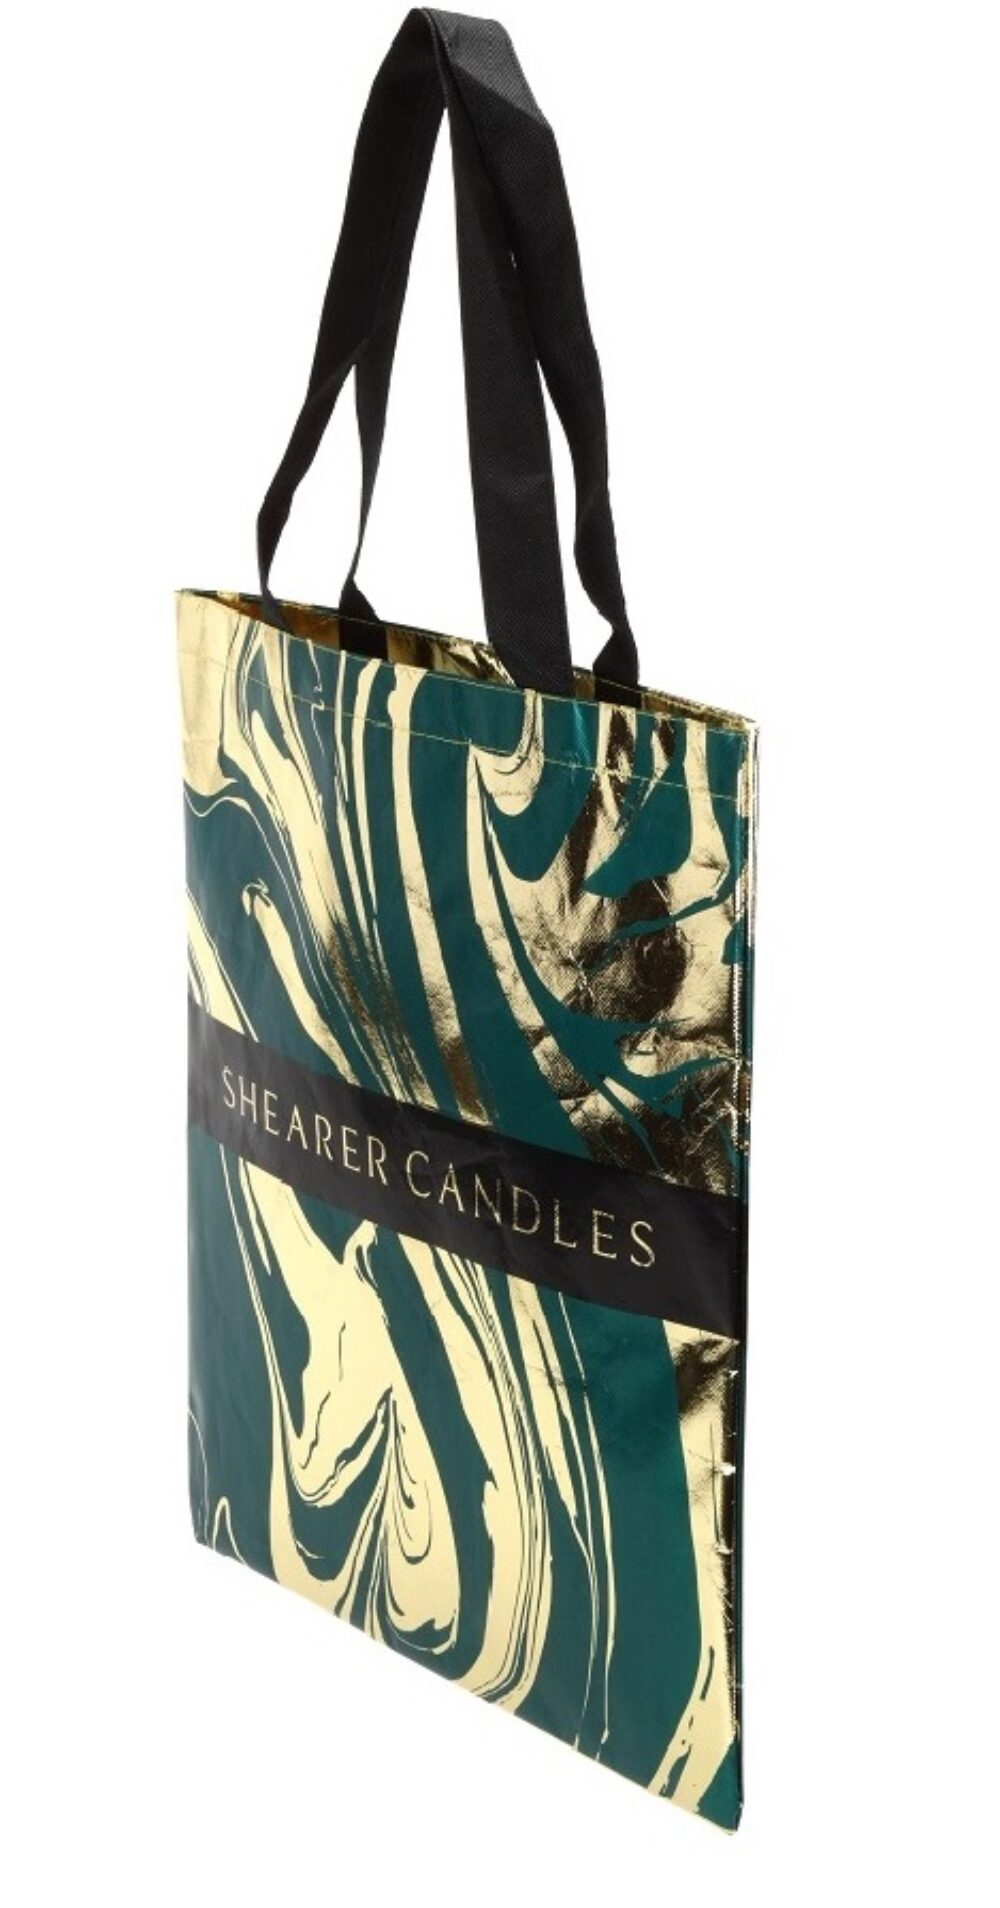 Get your Business Noticed at Trade Fairs, Conferences and Events with a Promotional Bag